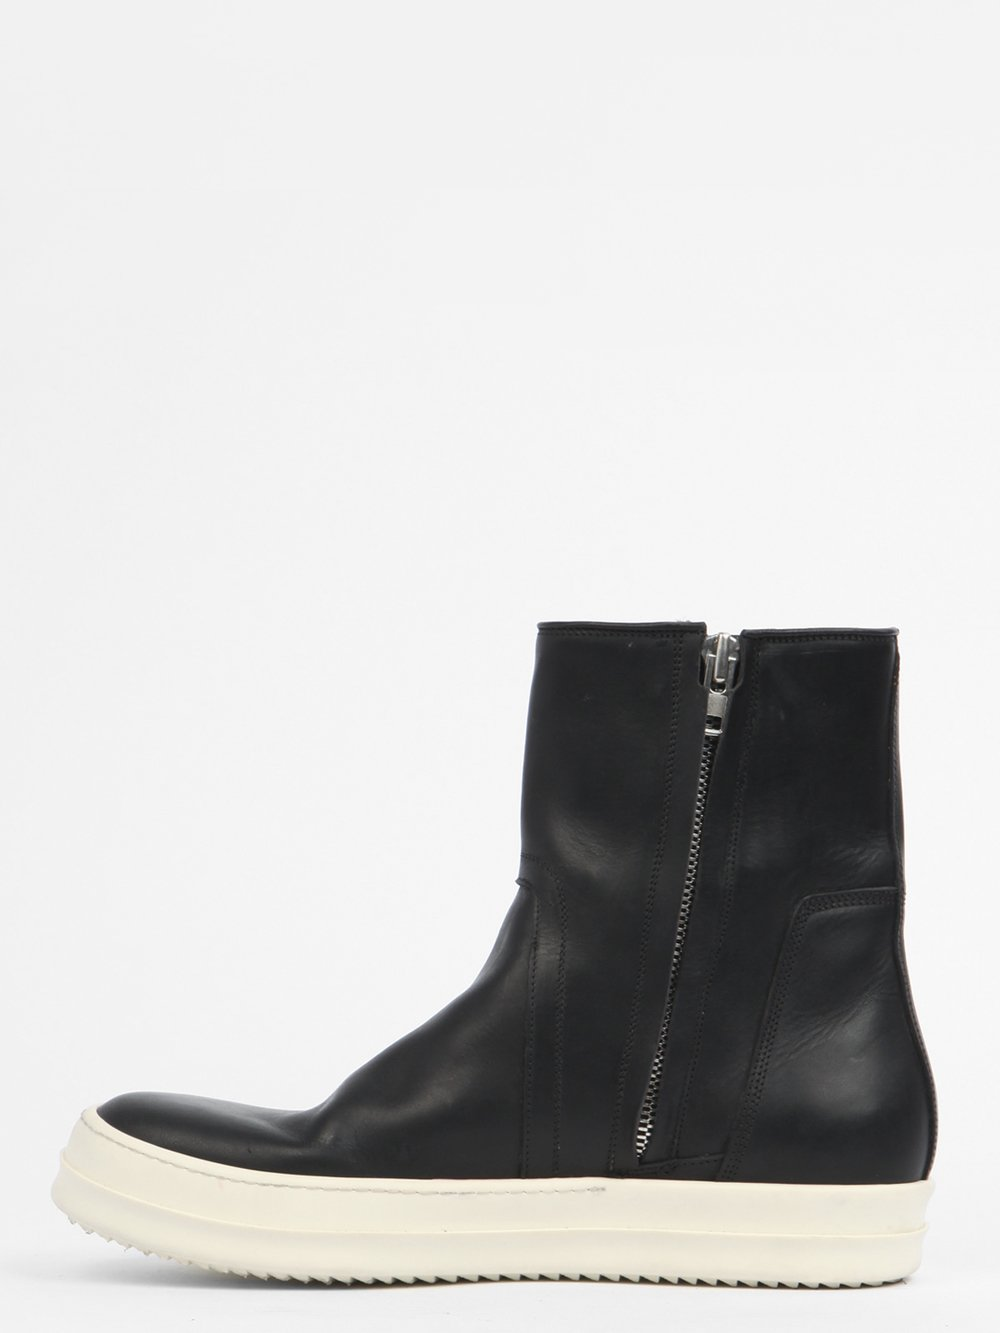 RICK OWENS - VICIOUS ANKLE BOOT